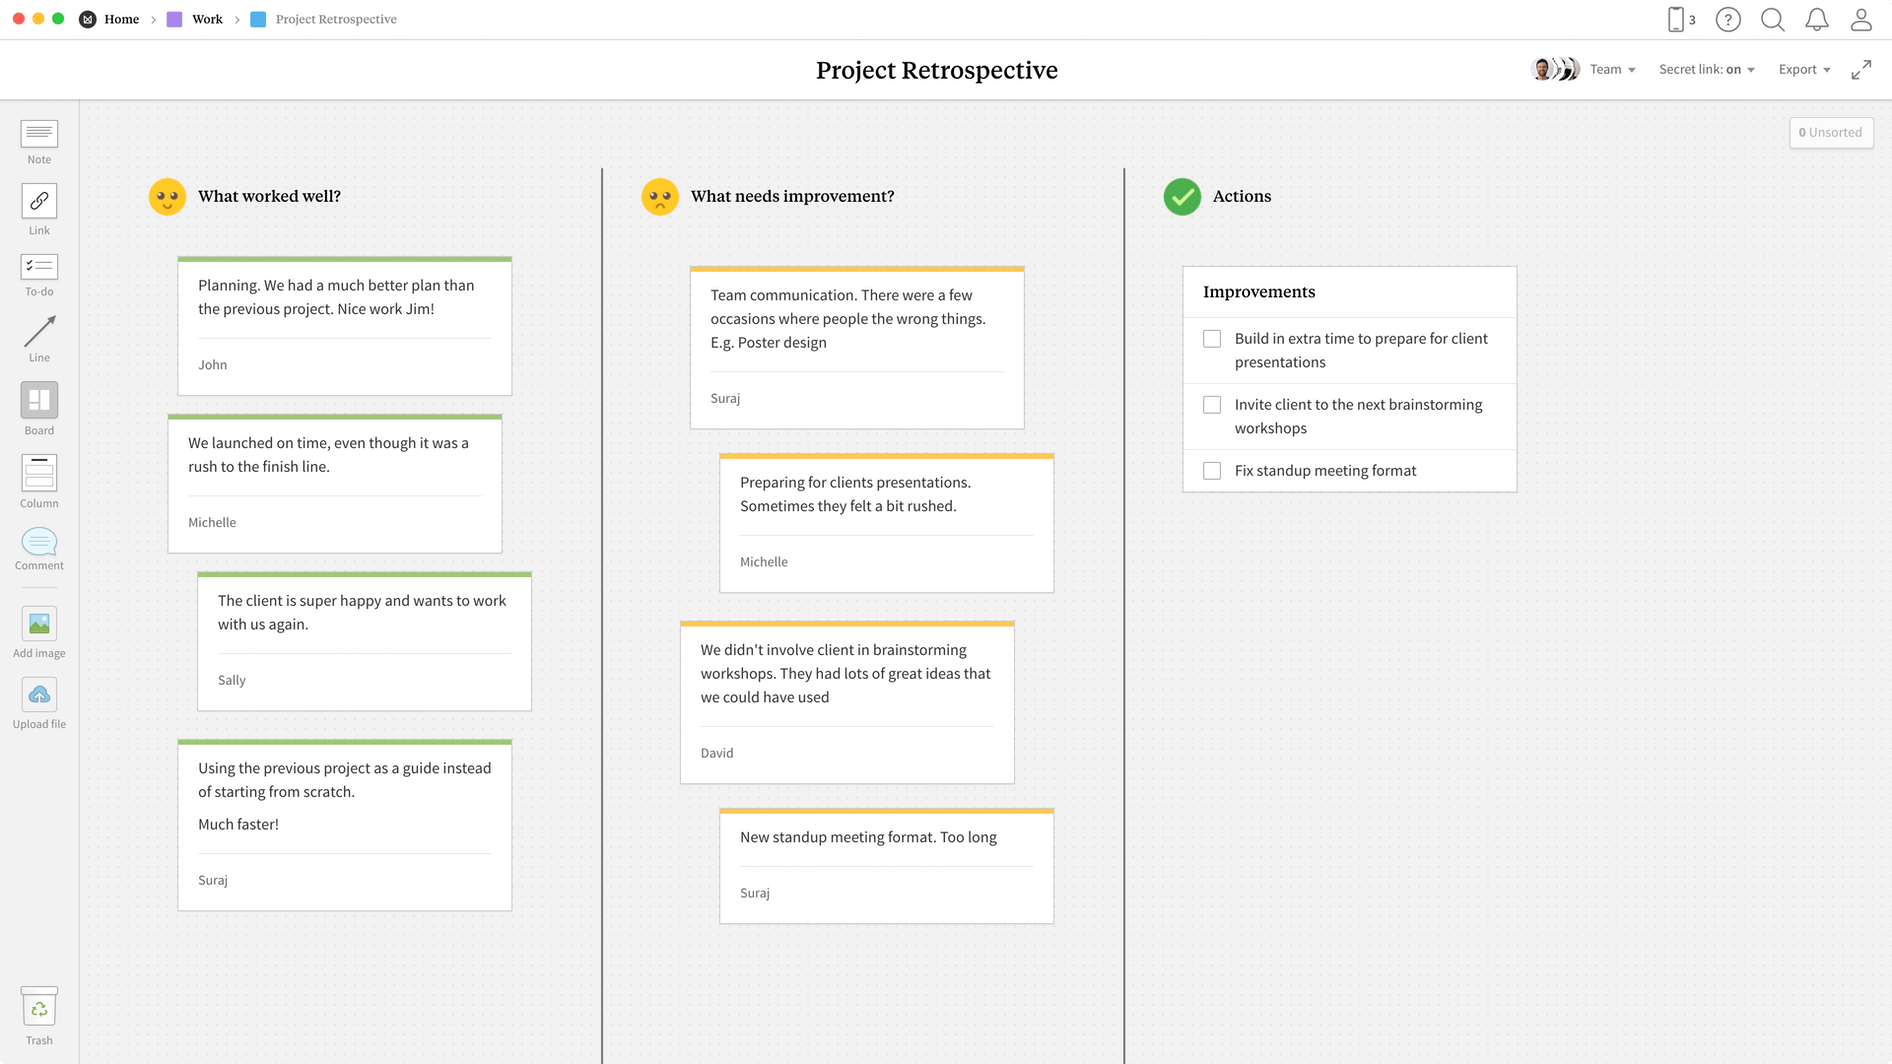 Project Retrospective Template, within the Milanote app